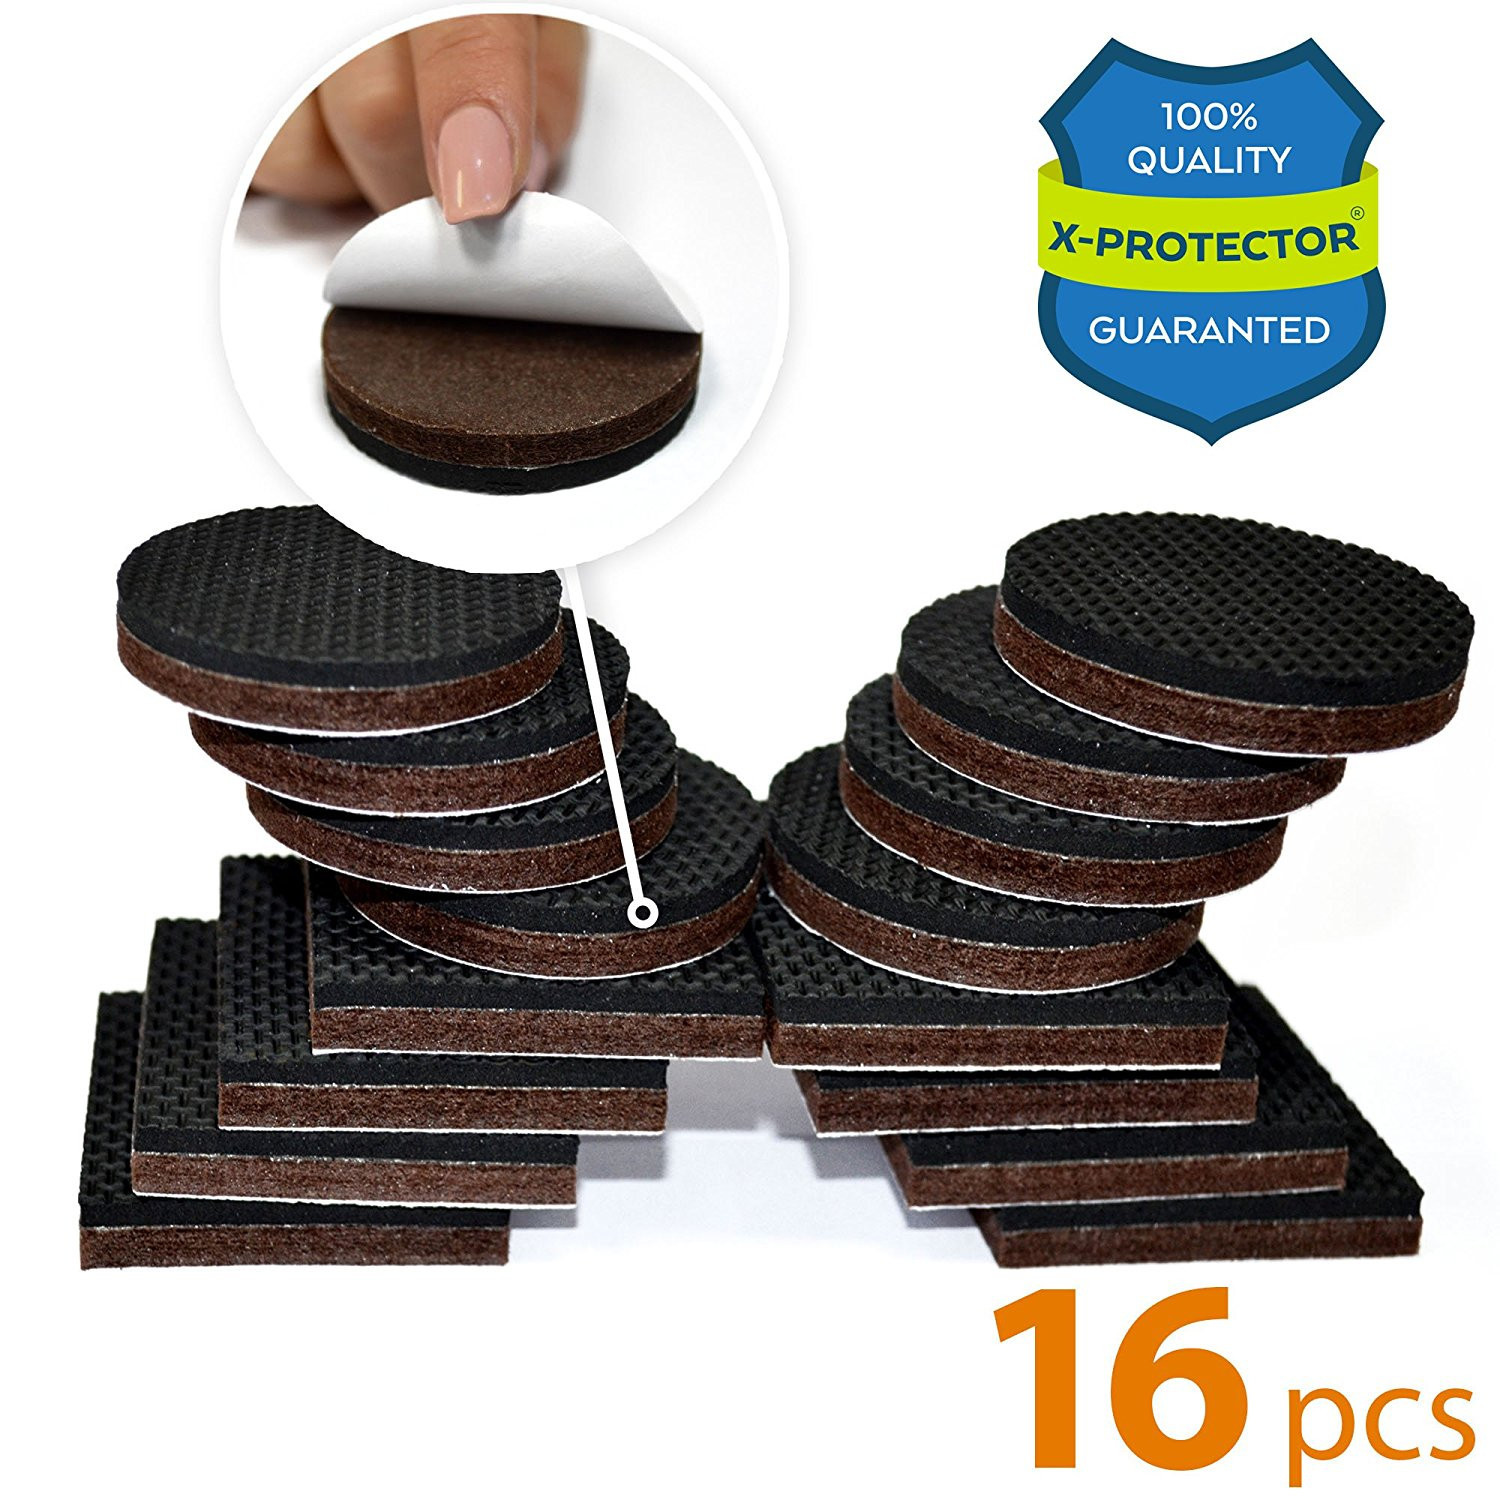 hardwood floor protectors furniture lowes of anti slide pads for furniture unique shop chair leg tips at lowes inside anti slide pads for furniture best of furniture pads amazon